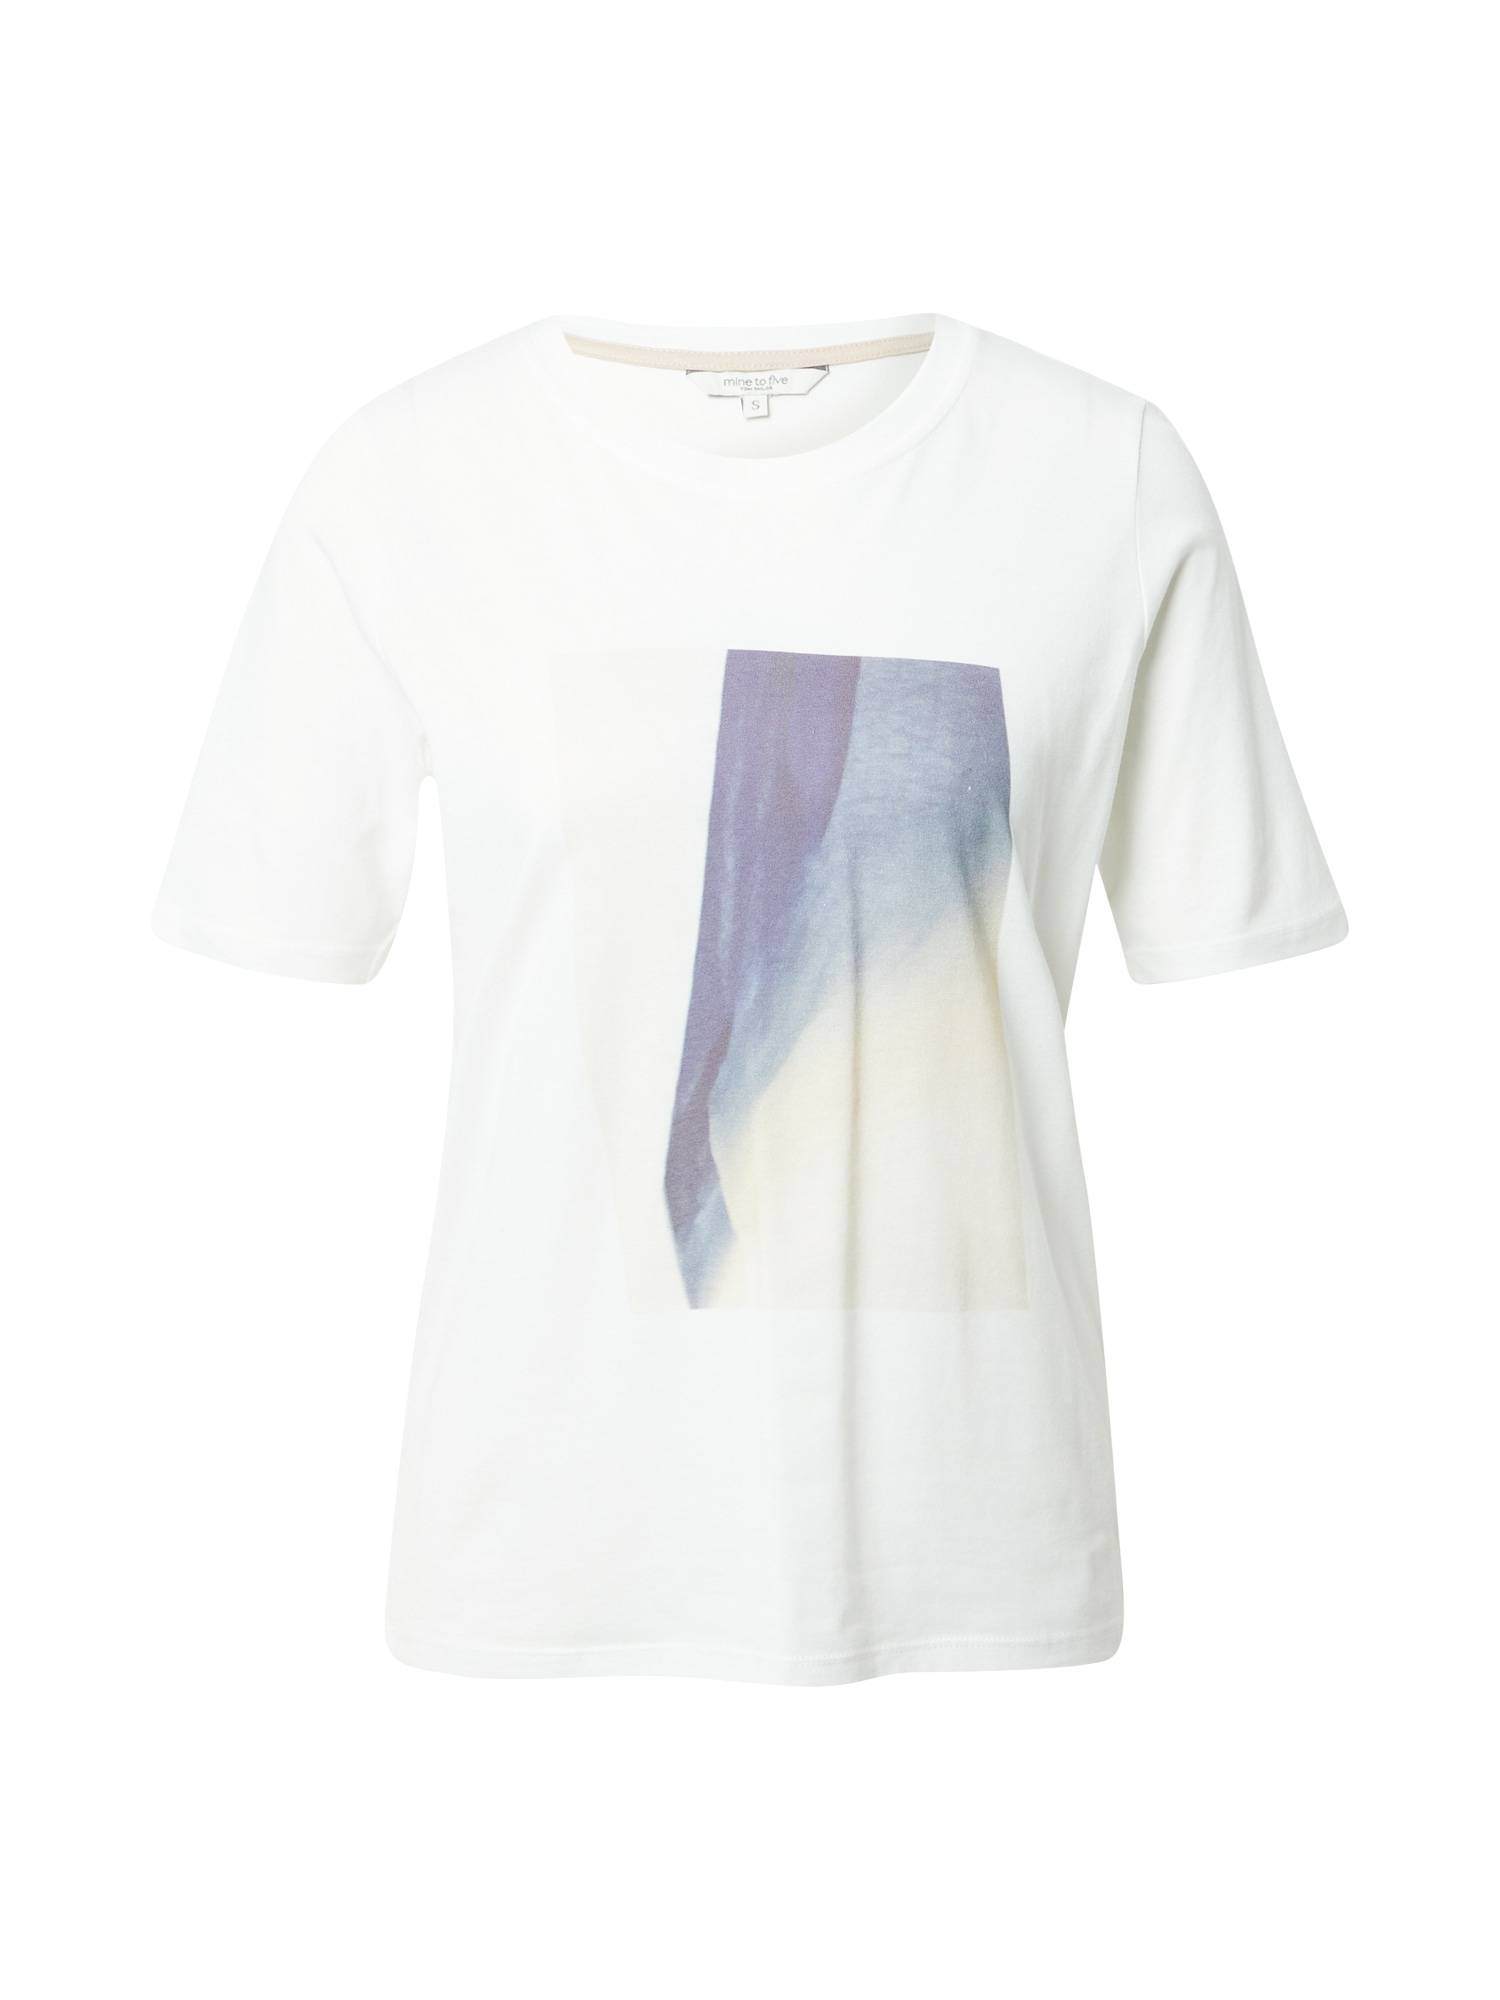 MINE TO FIVE T-shirt  - Blanc - Taille: XL - female